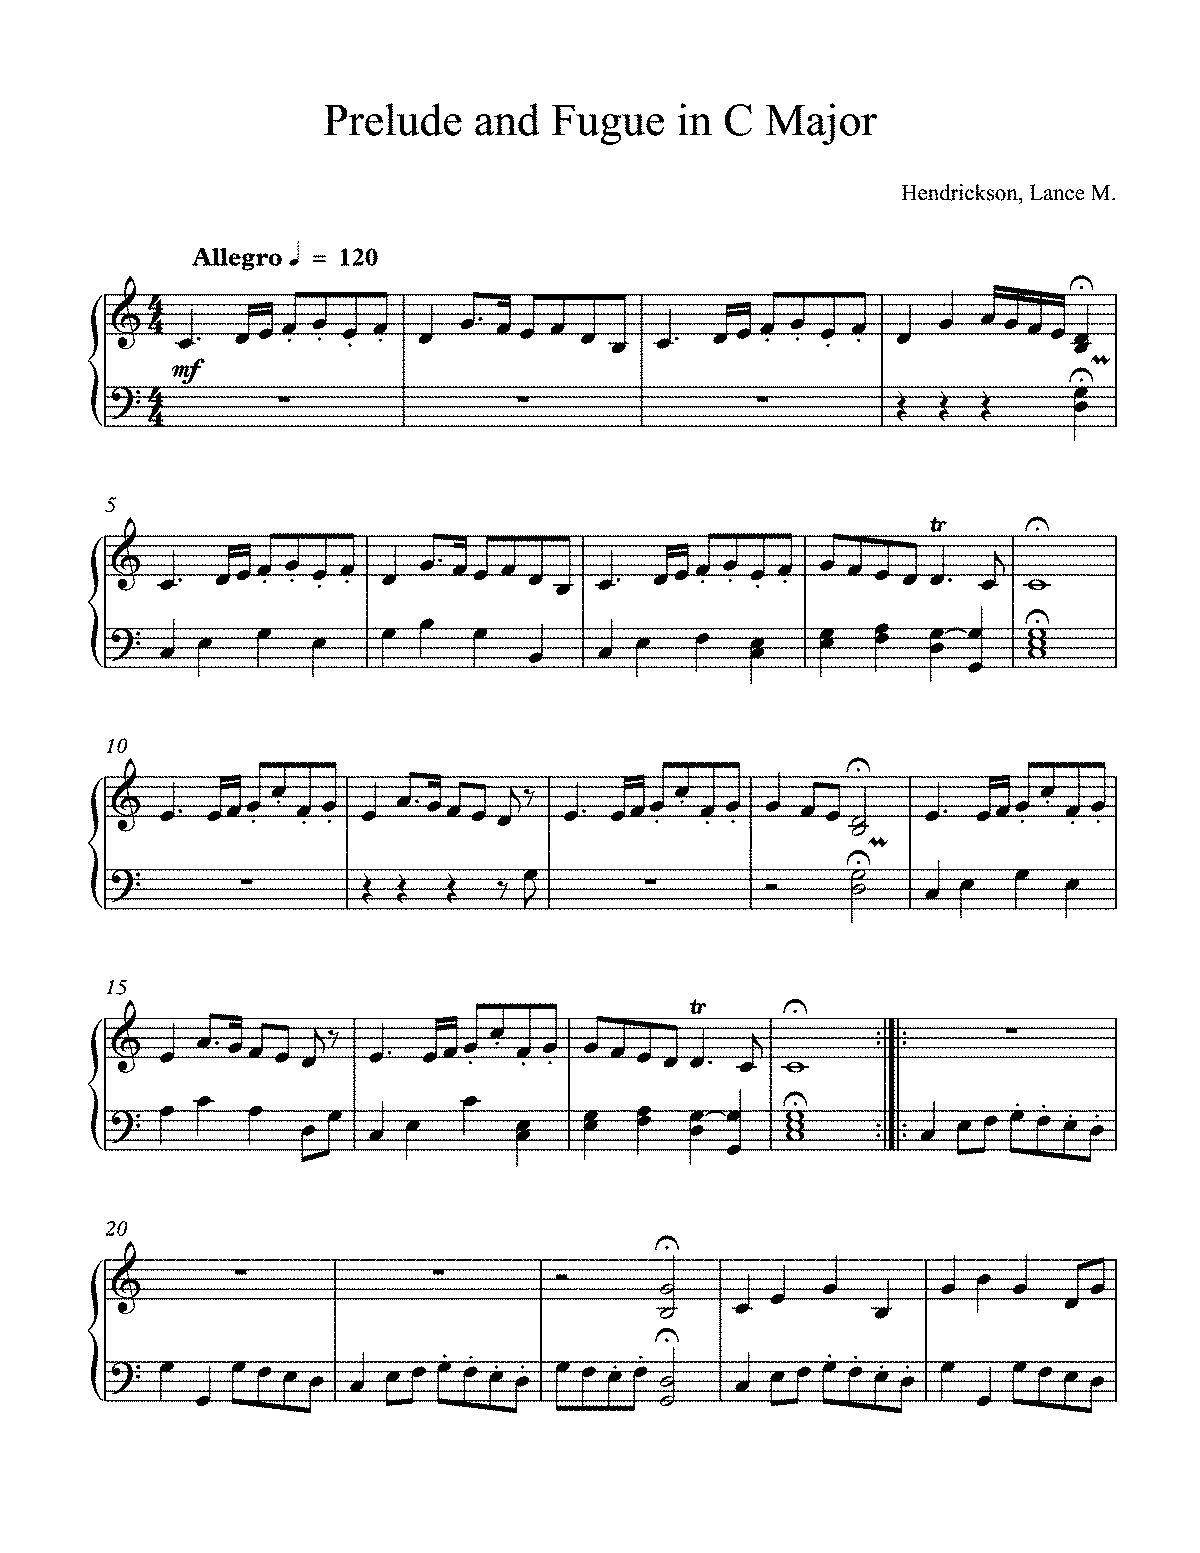 PMLP566020-Prelude and Fugue in C Major - Full Score.pdf